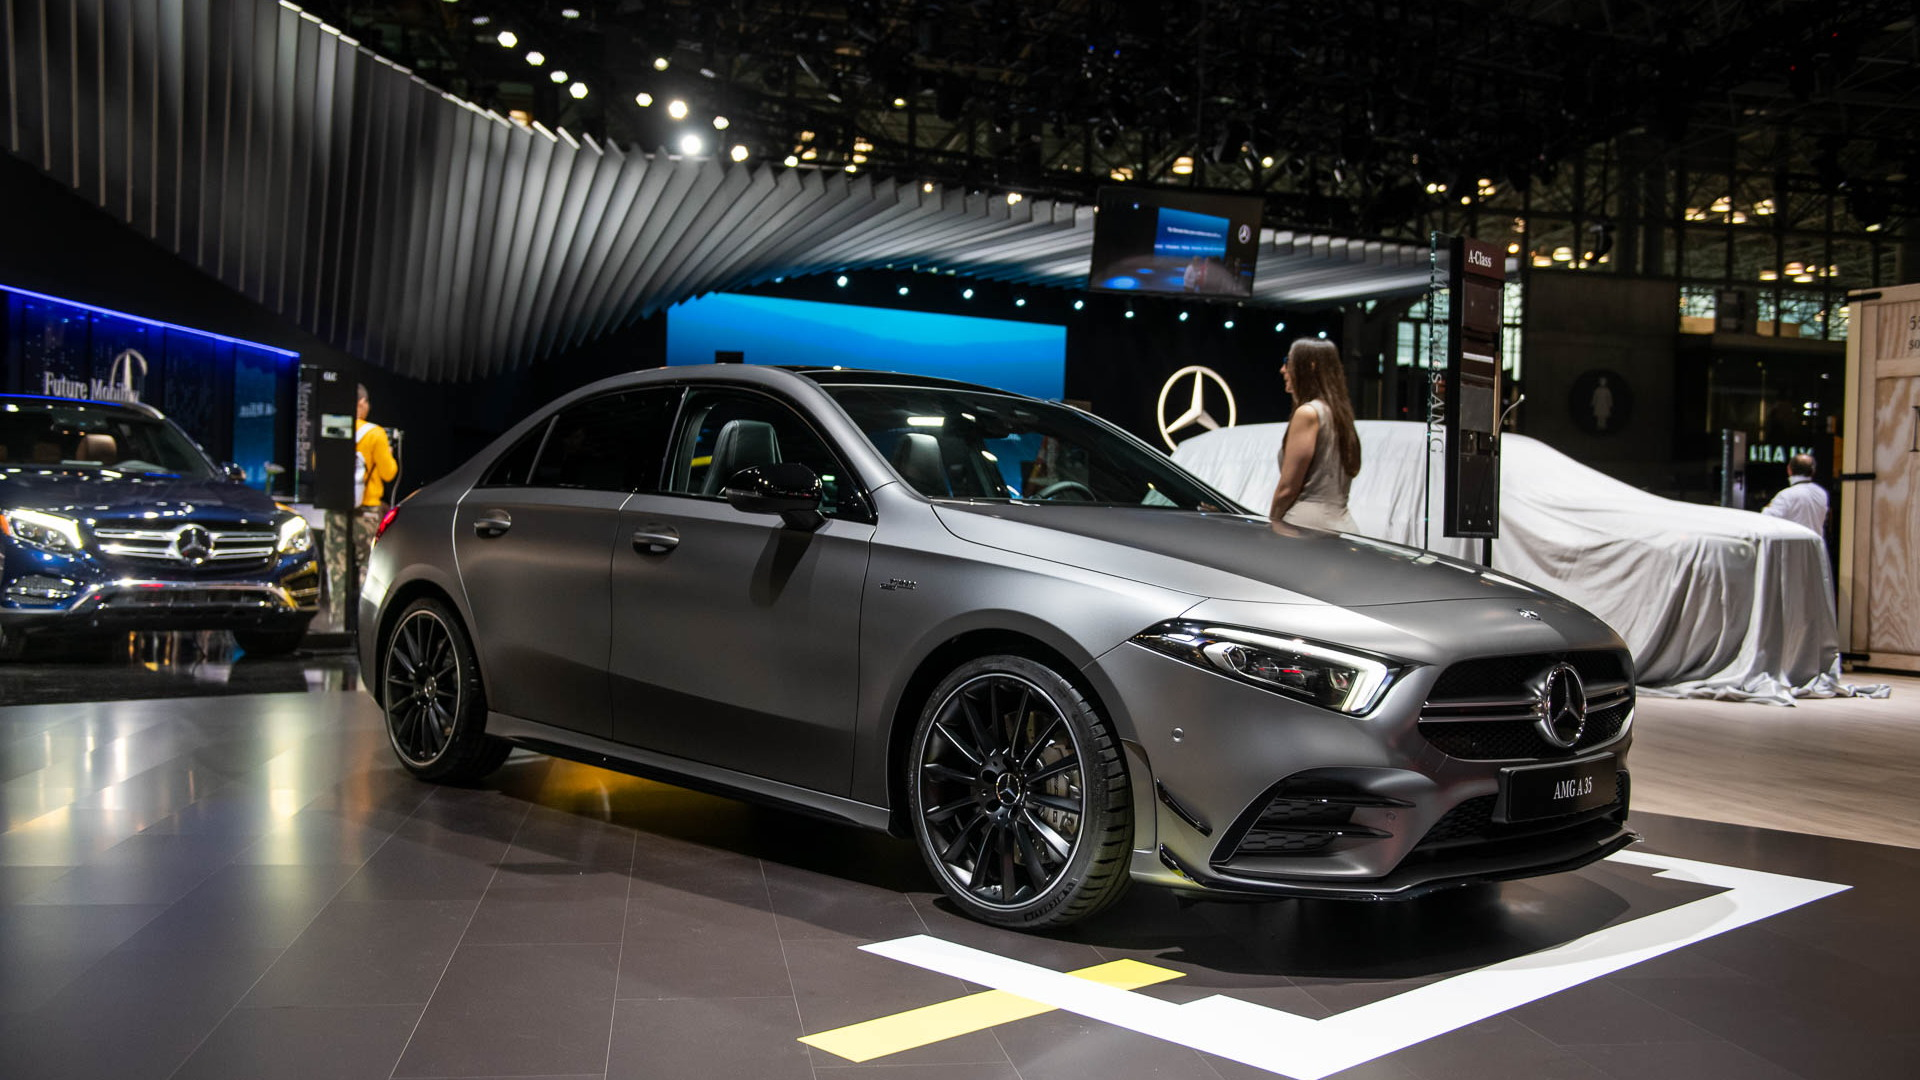 2020 Mercedes Amg A35 Sport Sedan Arrives With 302 Horsepower